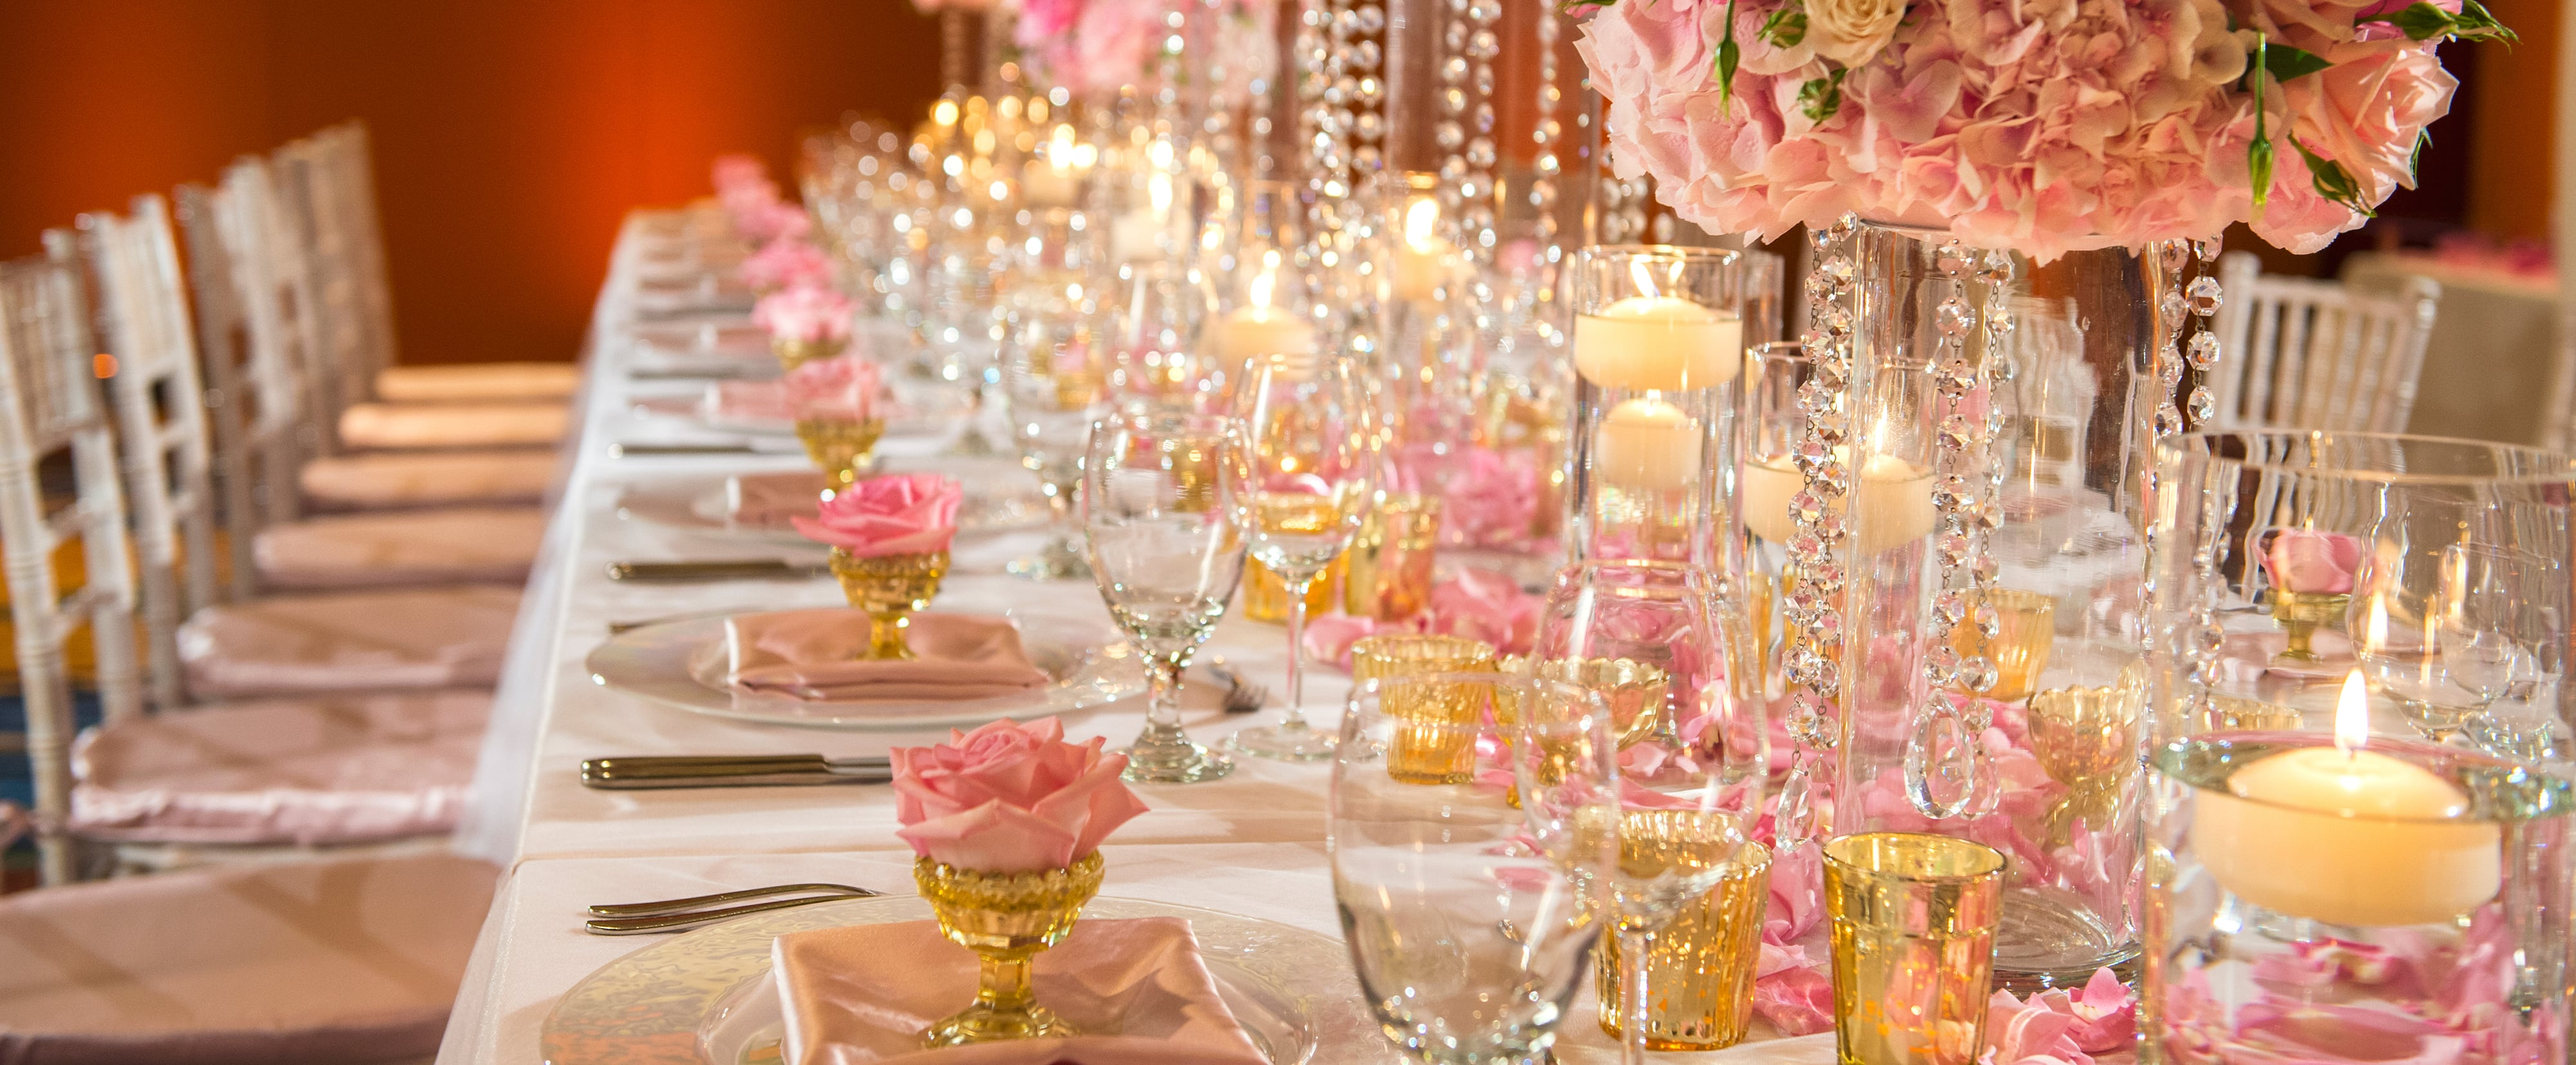 A dinner table in Ka'ala Ballroom decorated with pink roses and pearls